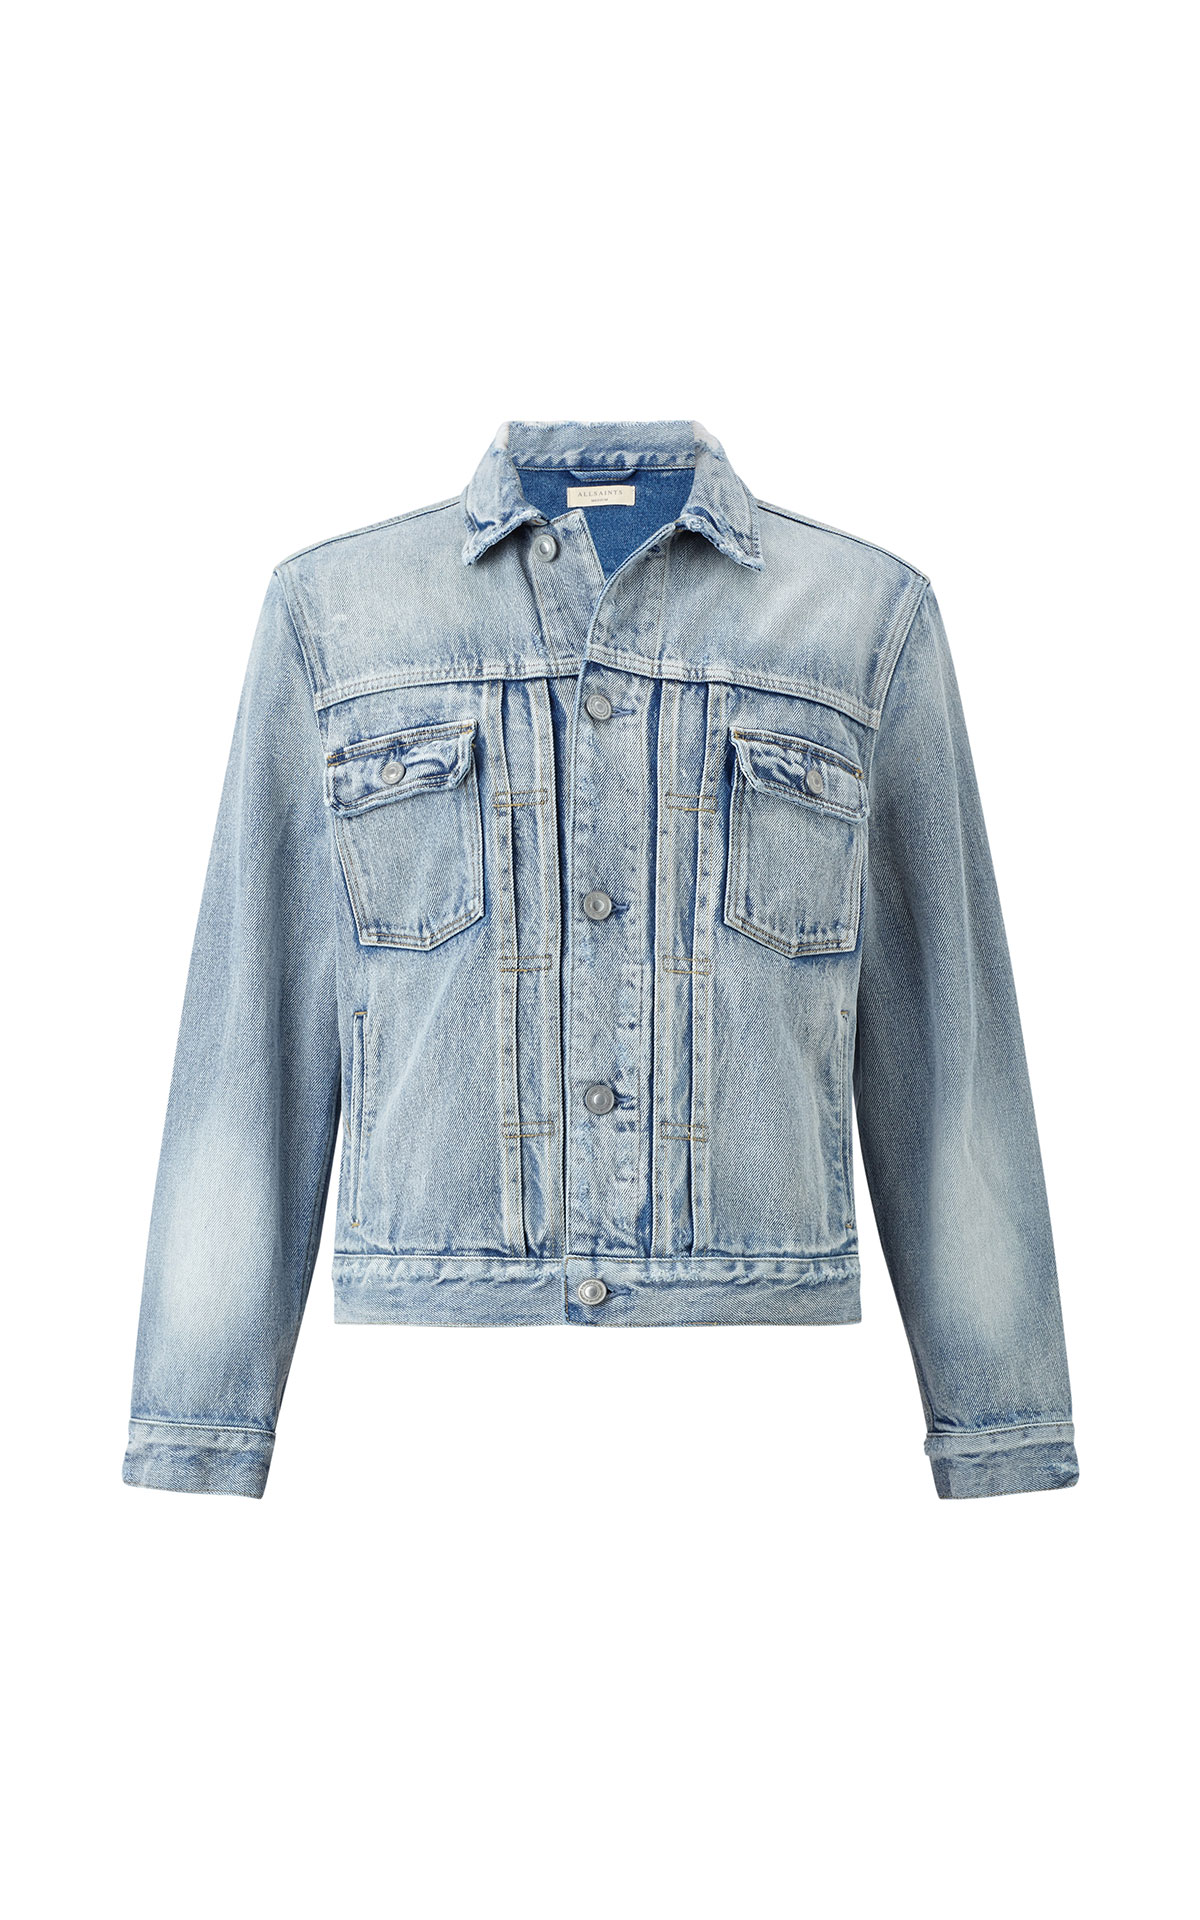 AllSaints Imoku jacket from Bicester Village